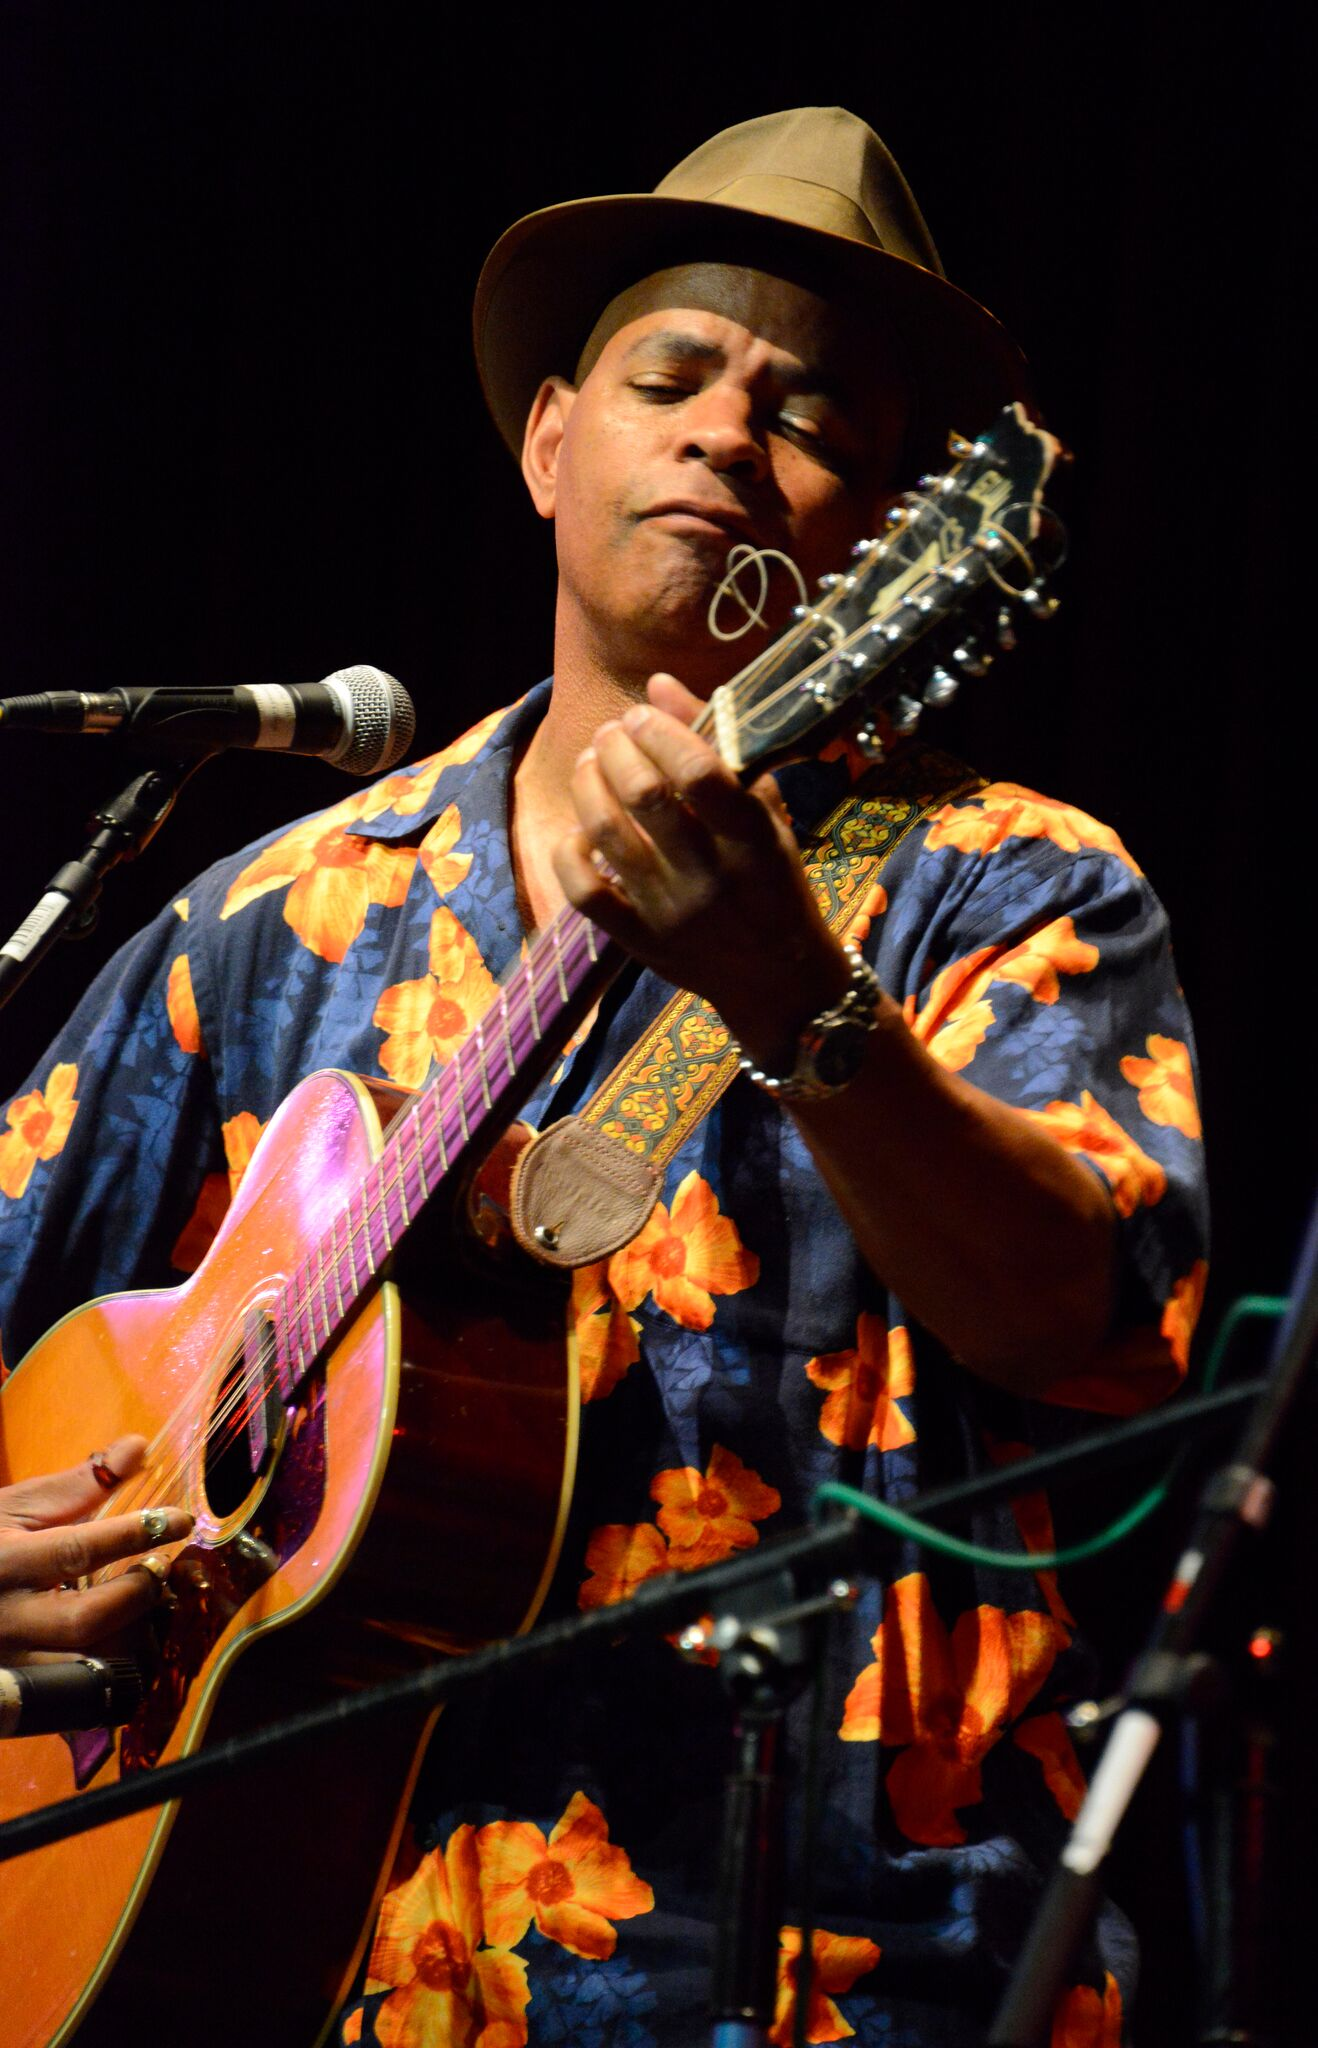 Guy Davis performing on stage